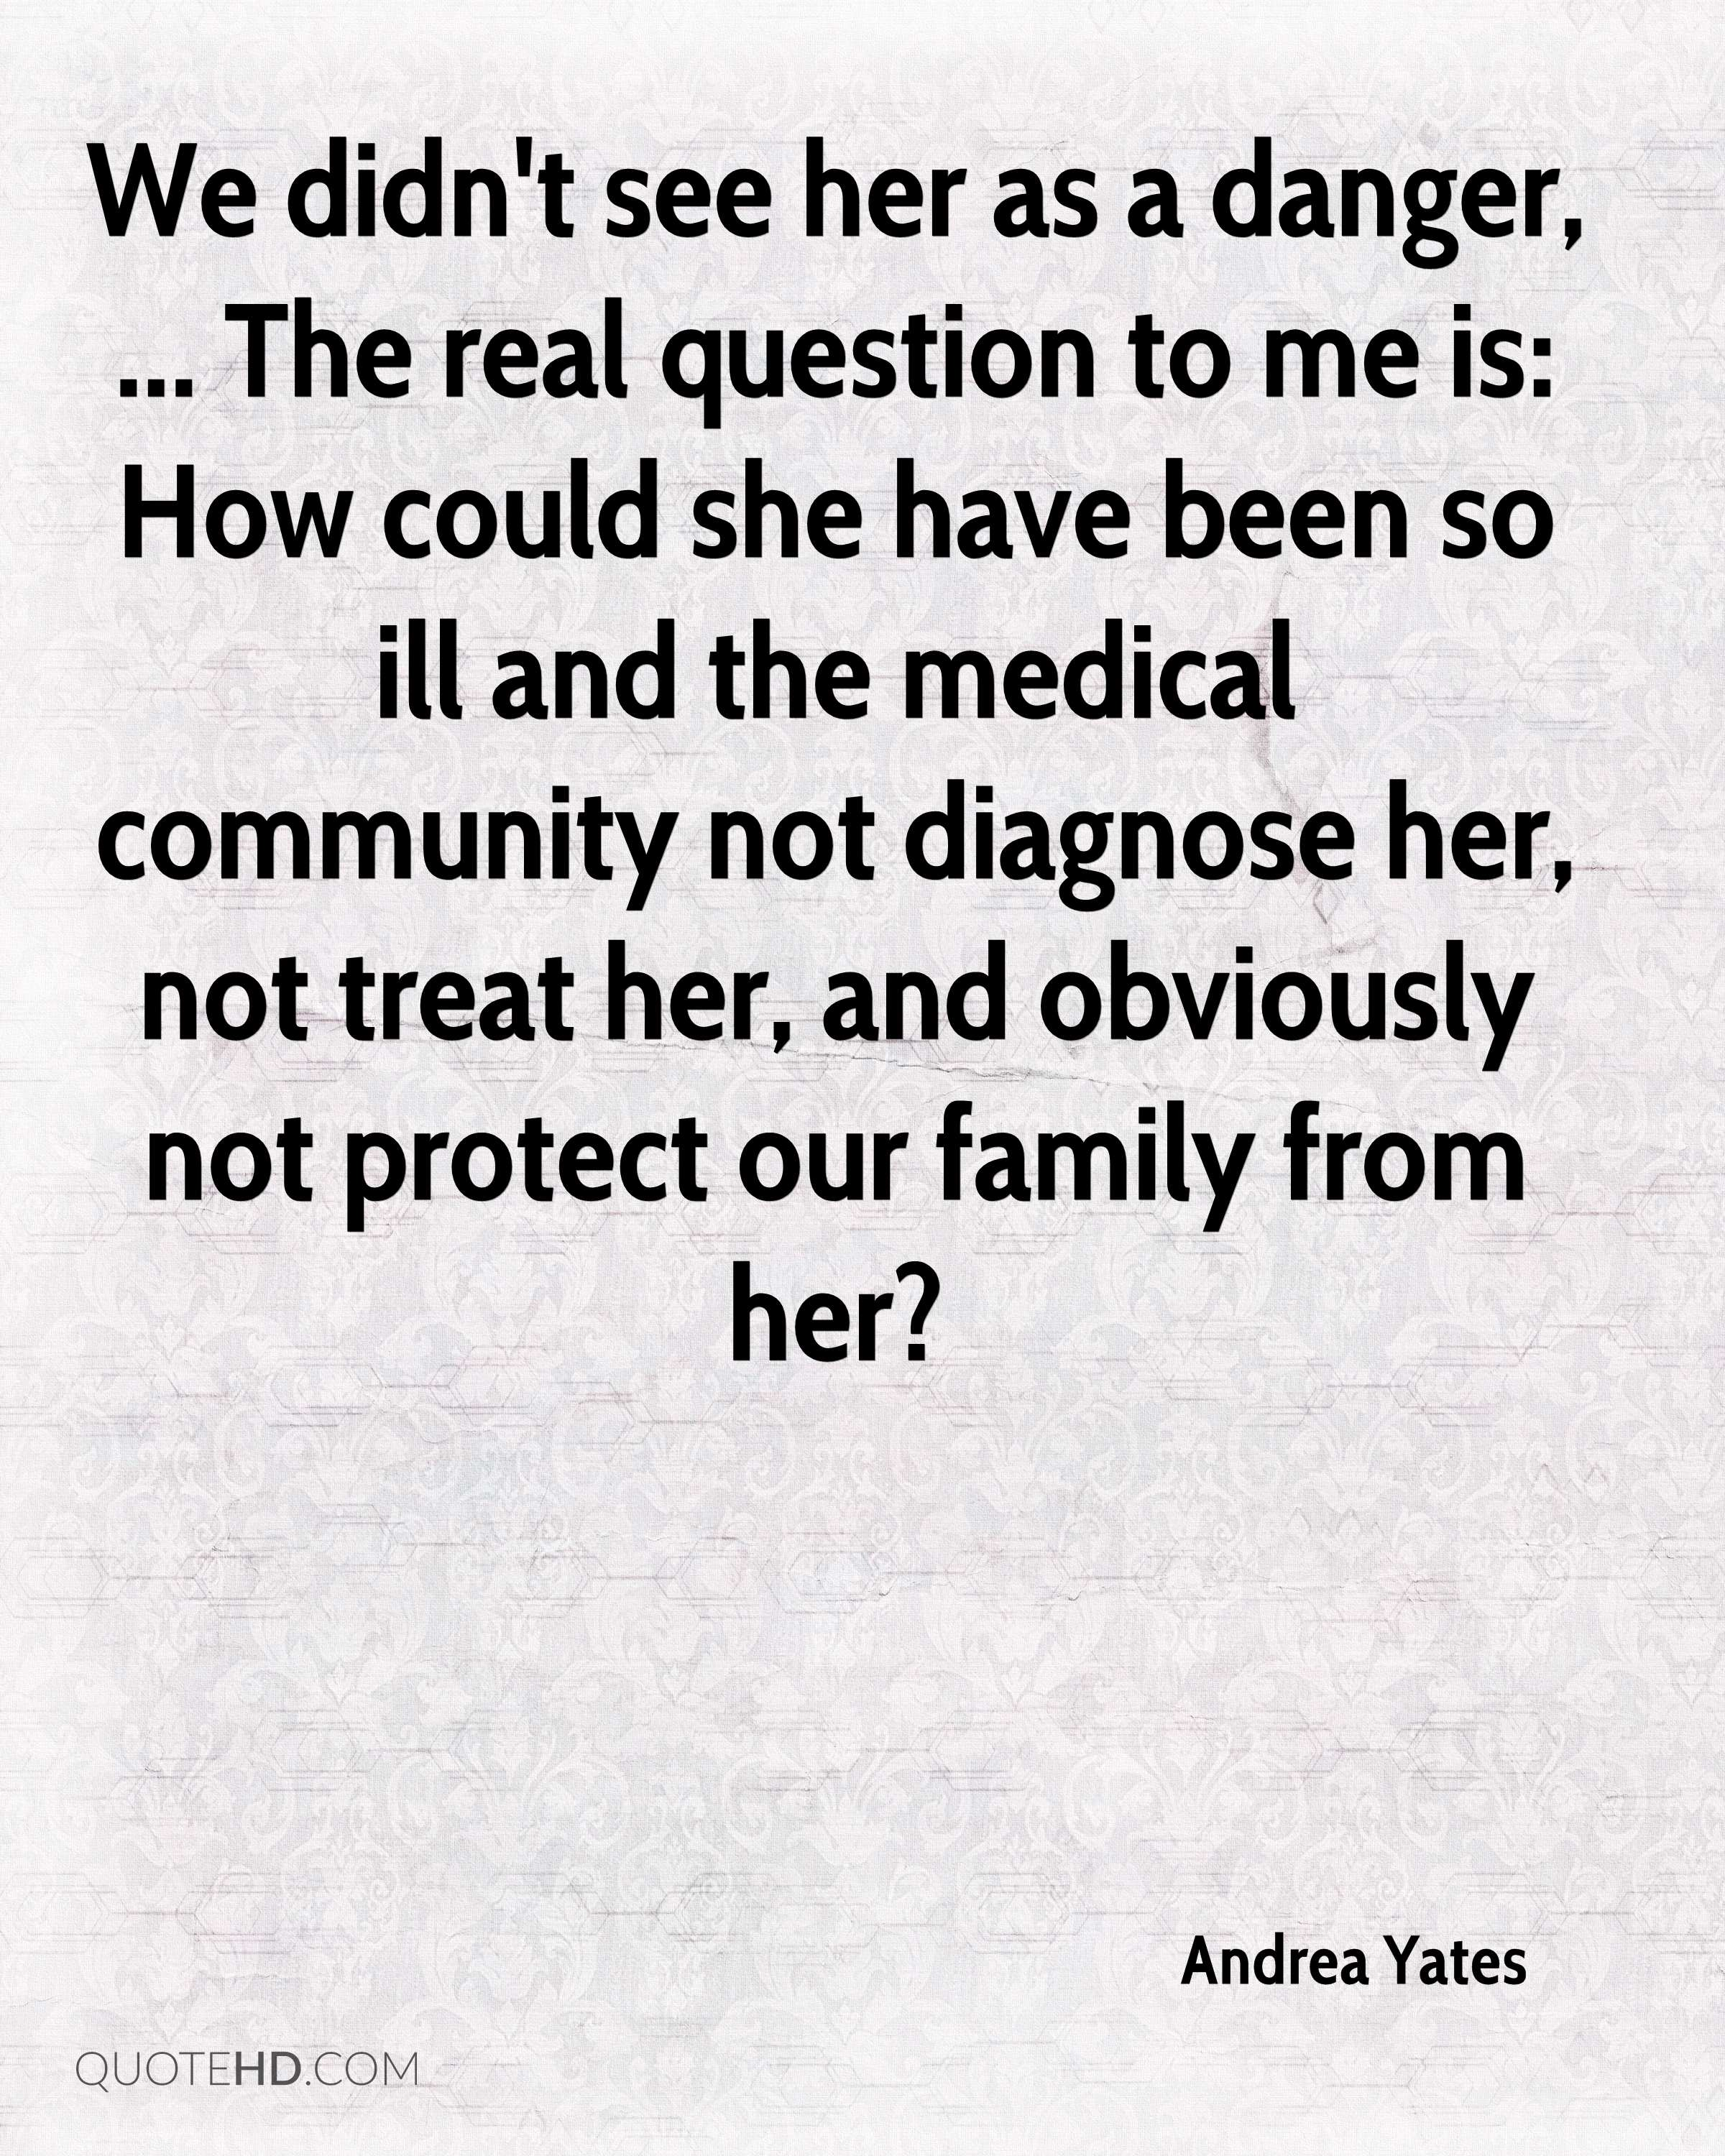 We didn't see her as a danger, ... The real question to me is: How could she have been so ill and the medical community not diagnose her, not treat her, and obviously not protect our family from her?